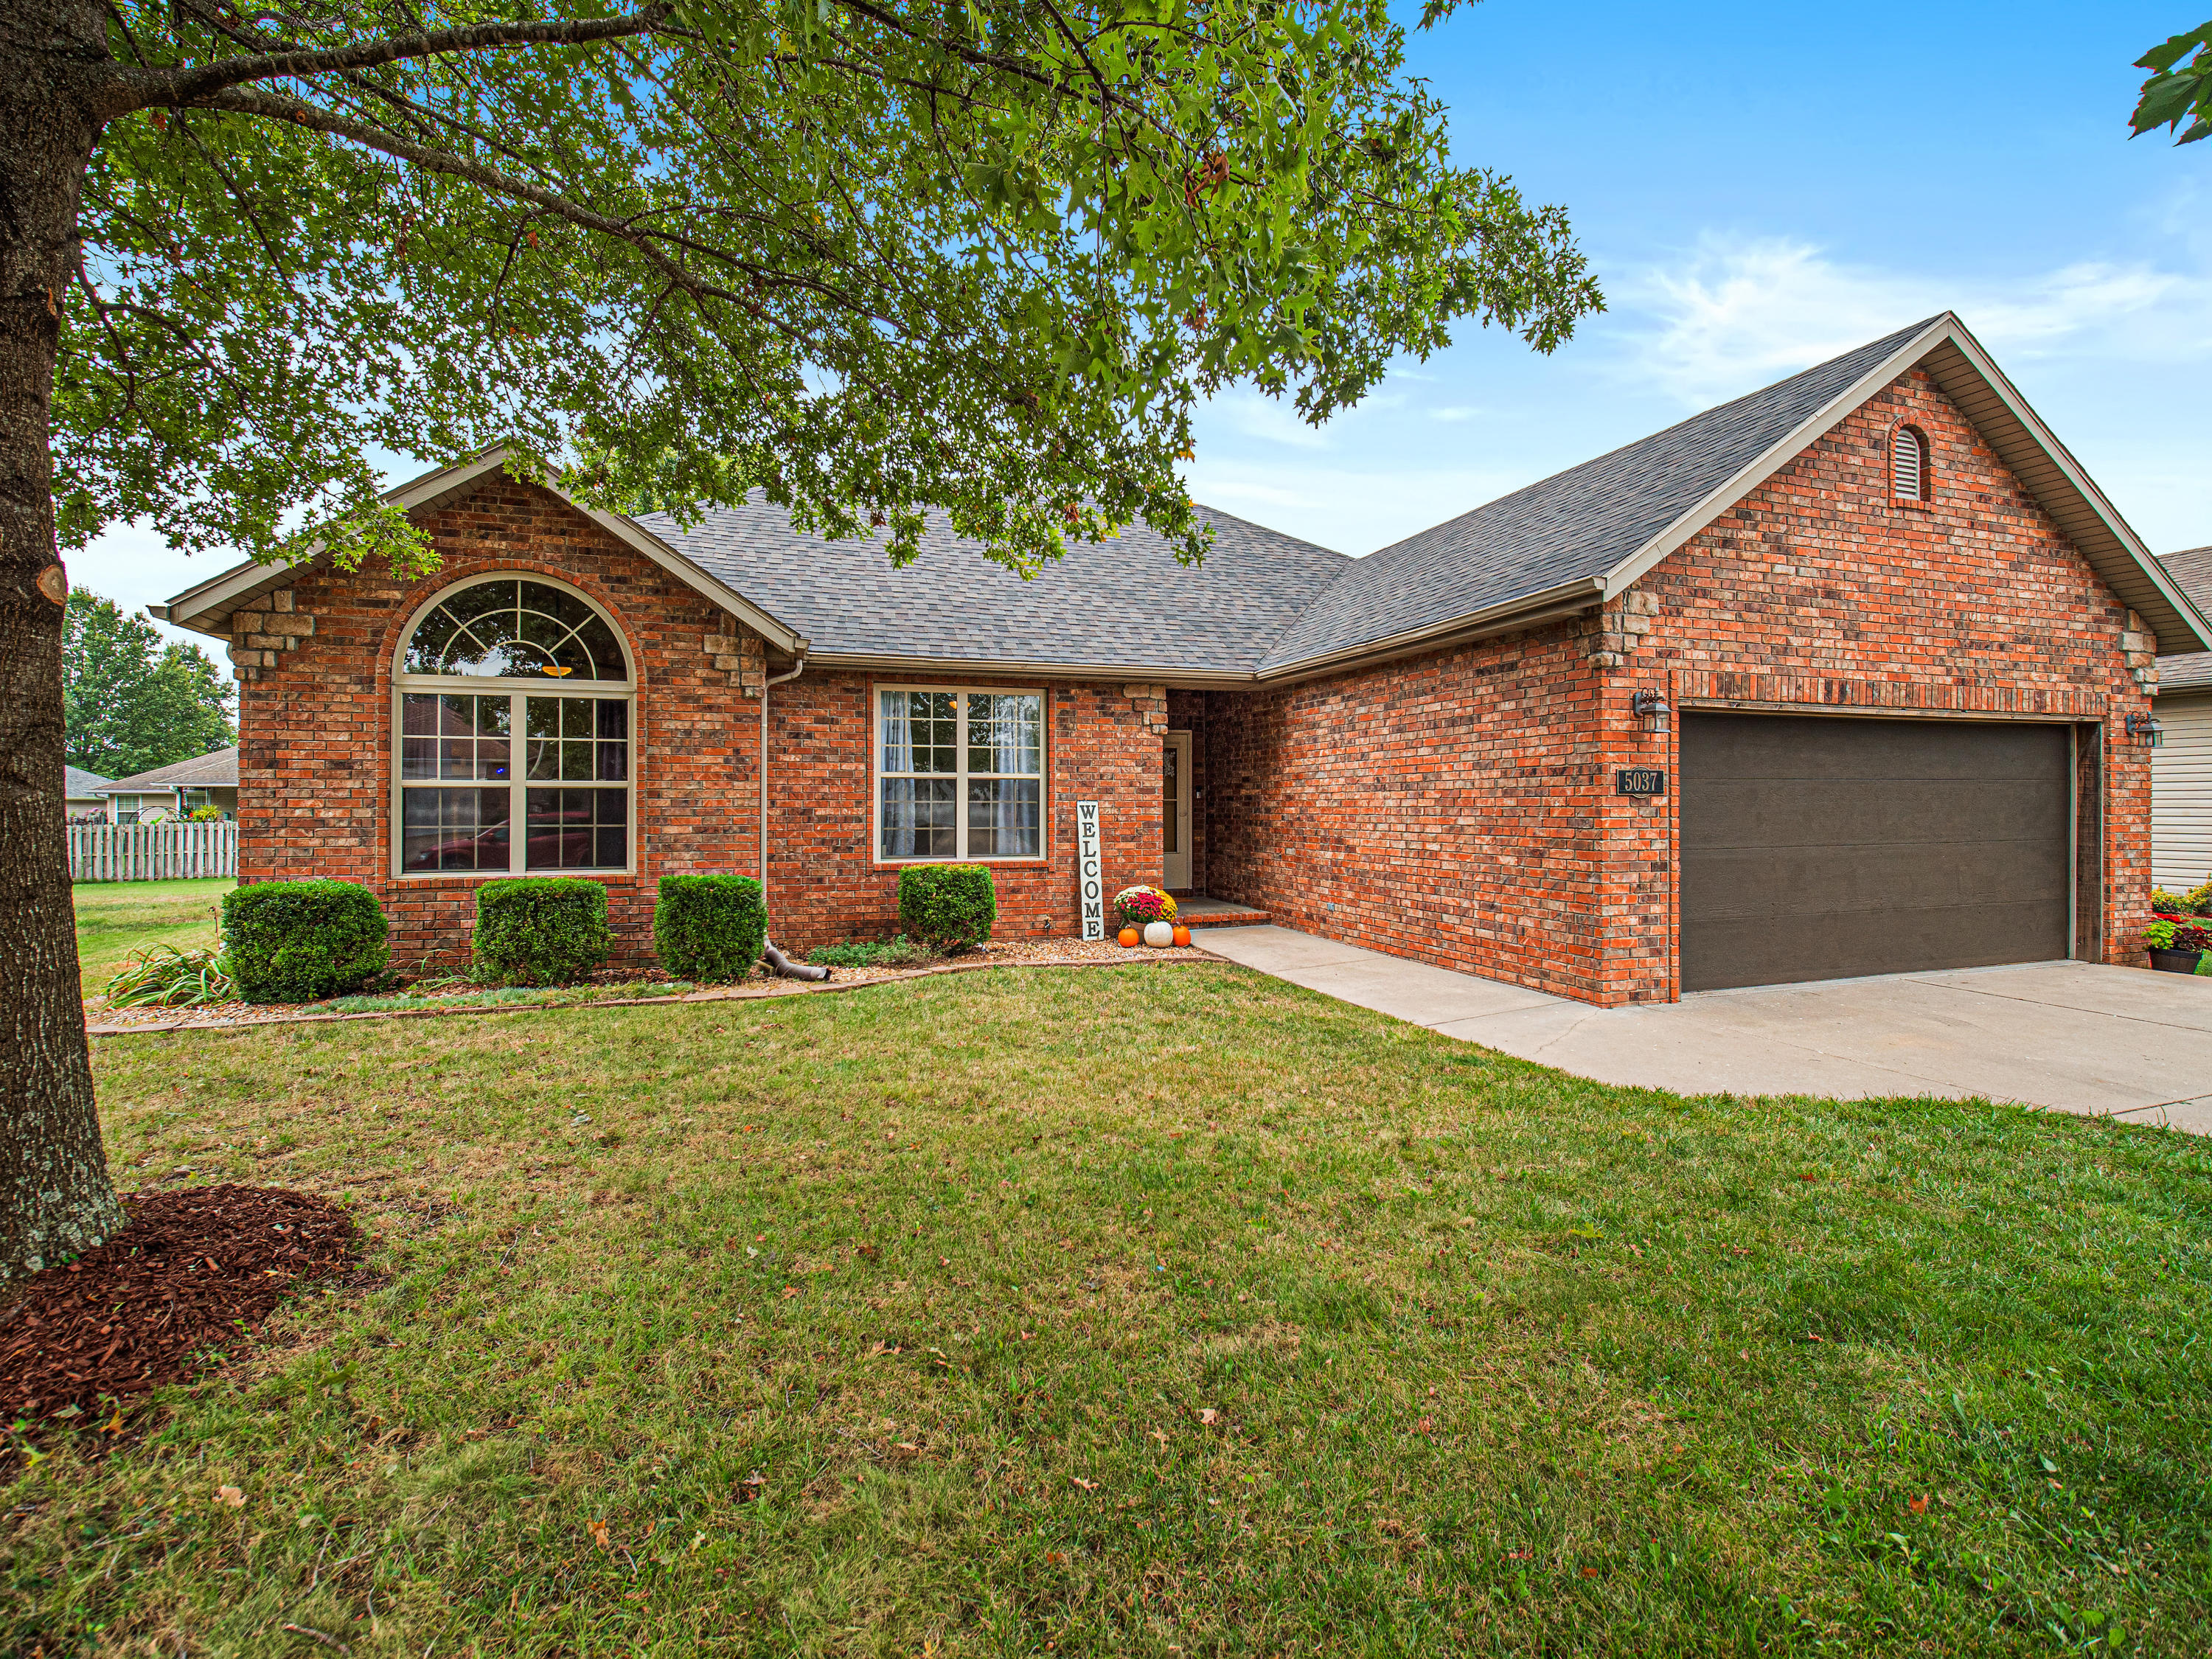 5037 South Red Oak Battlefield, MO 65619